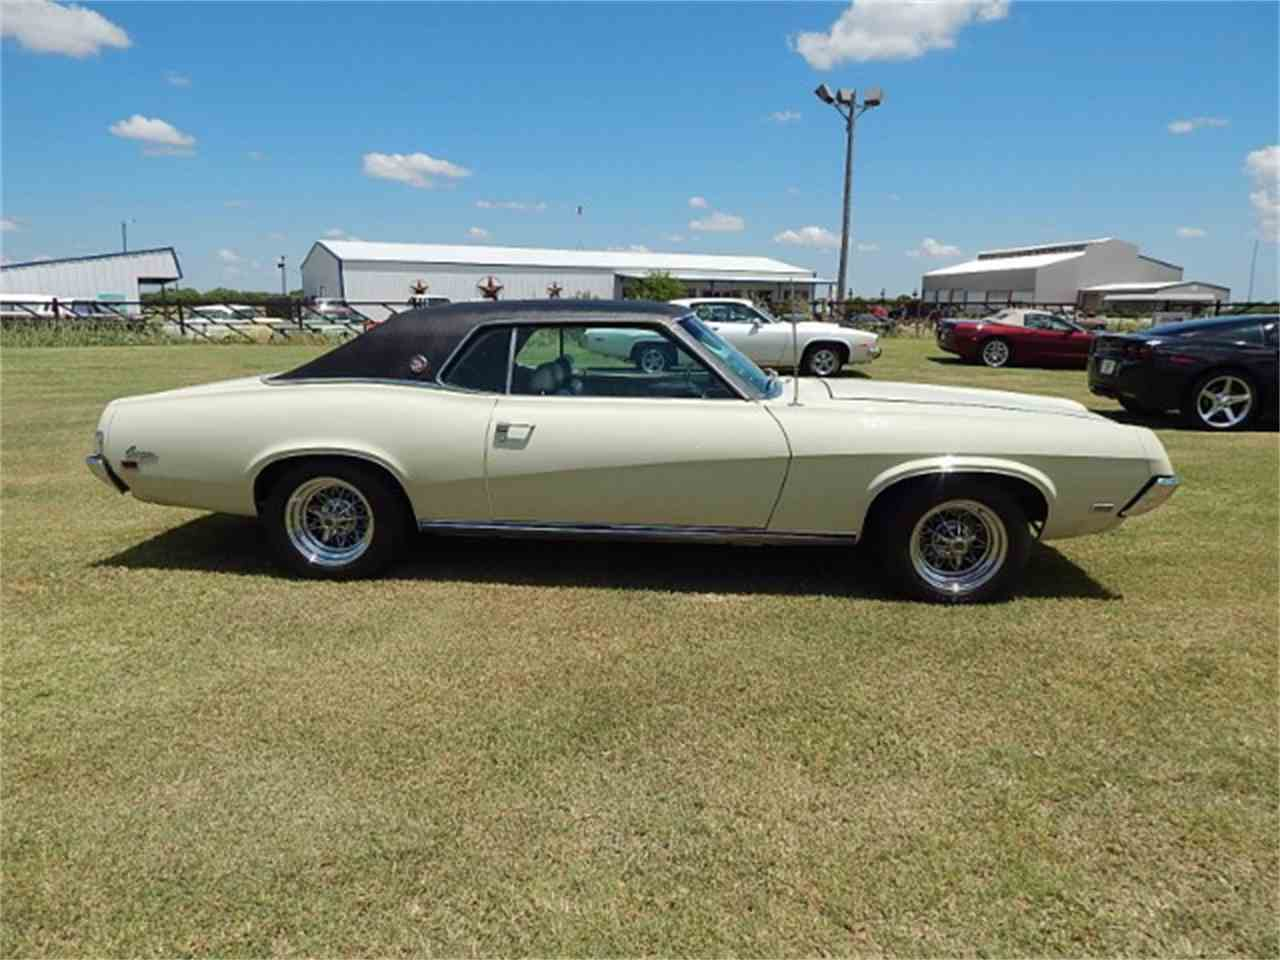 Large Picture of 1969 Mercury Cougar located in Wichita Falls Texas - $26,900.00 Offered by Lone Star Muscle Cars - LG03